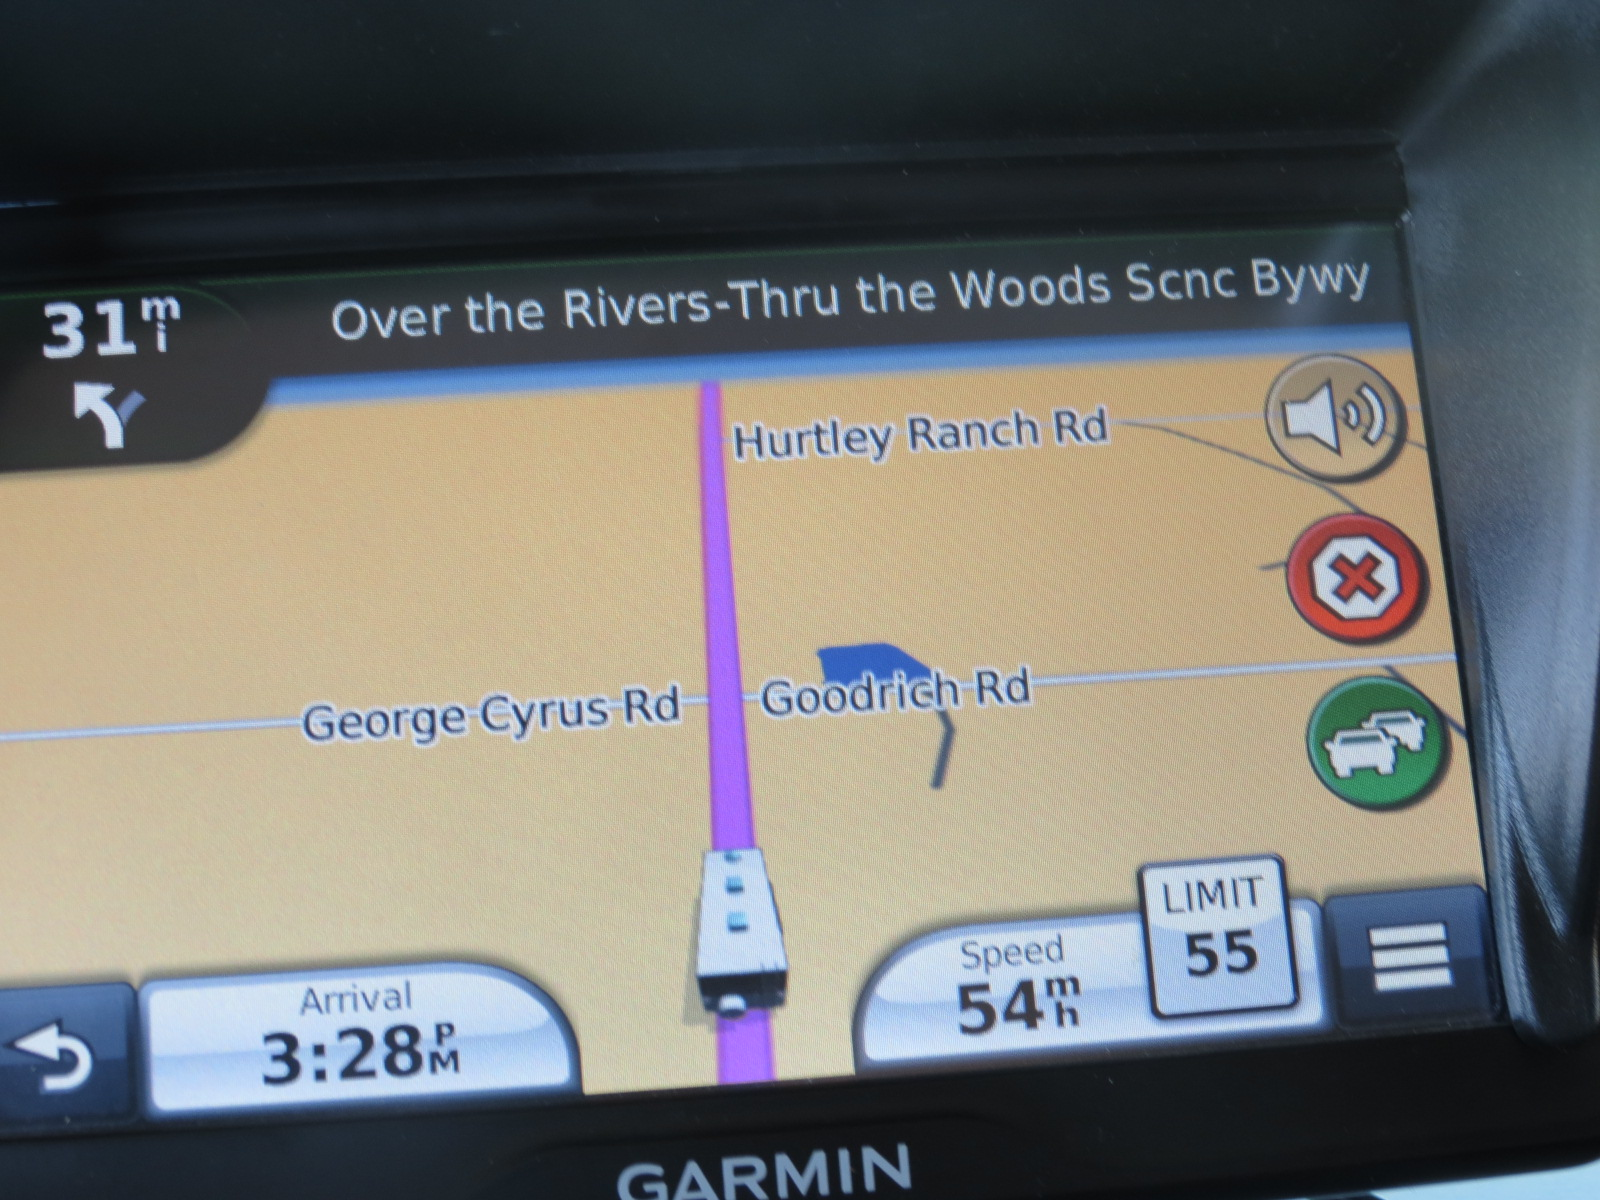 Over the River - Thru the Woods Scenic Byway.......Really!